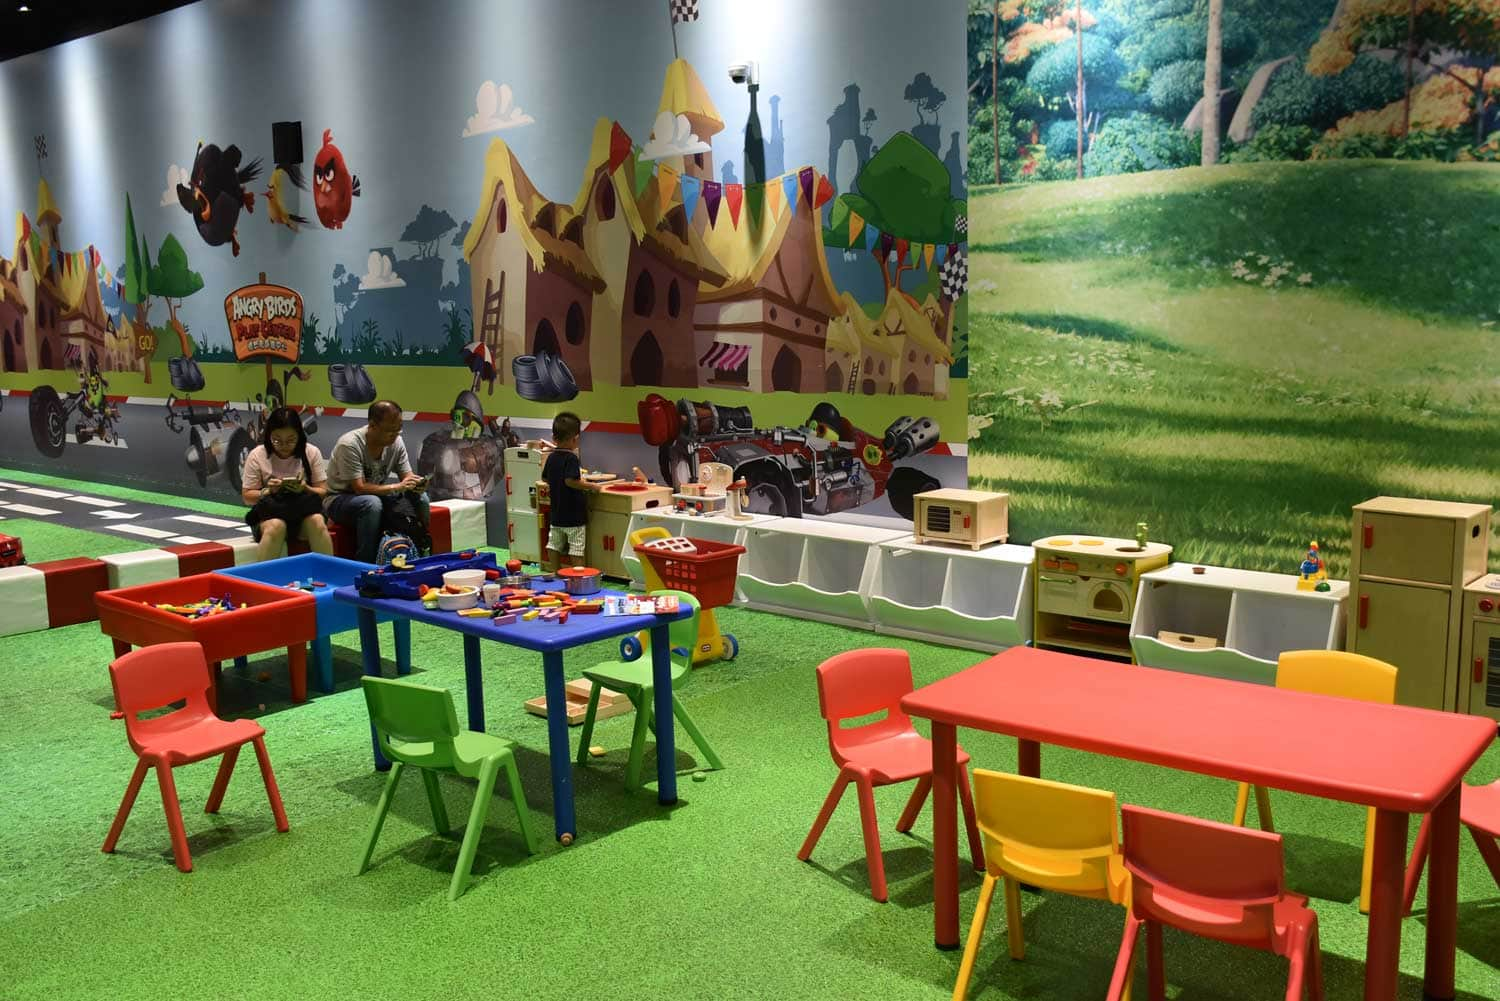 Sofitel Macau Angry Birds Play Center tables